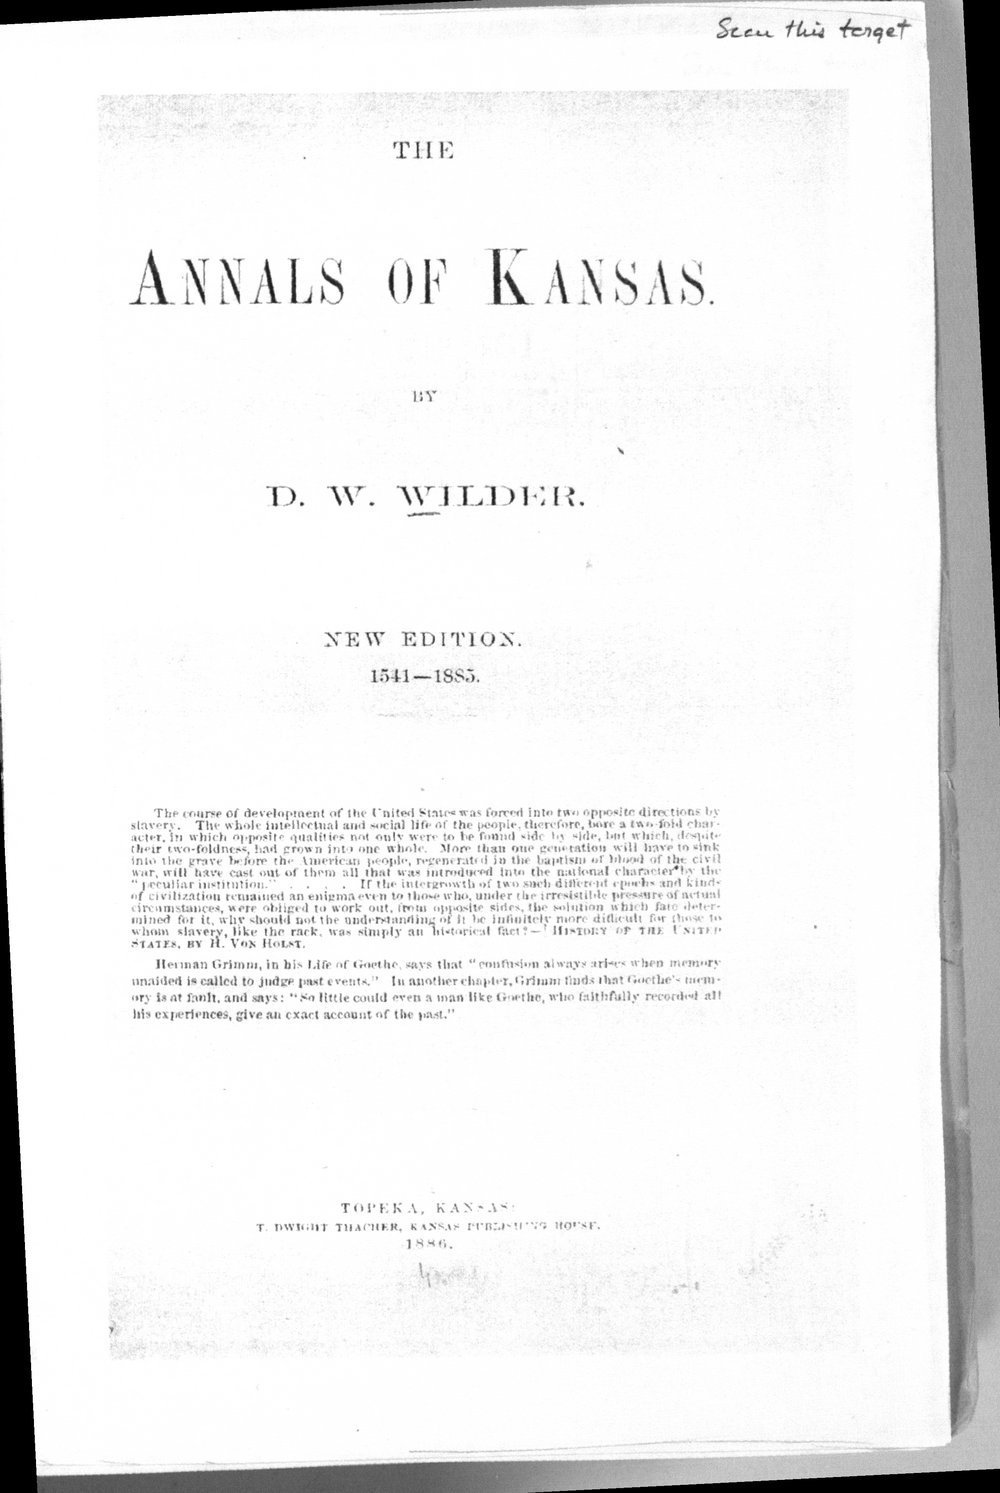 Annals of Kansas - Title Page